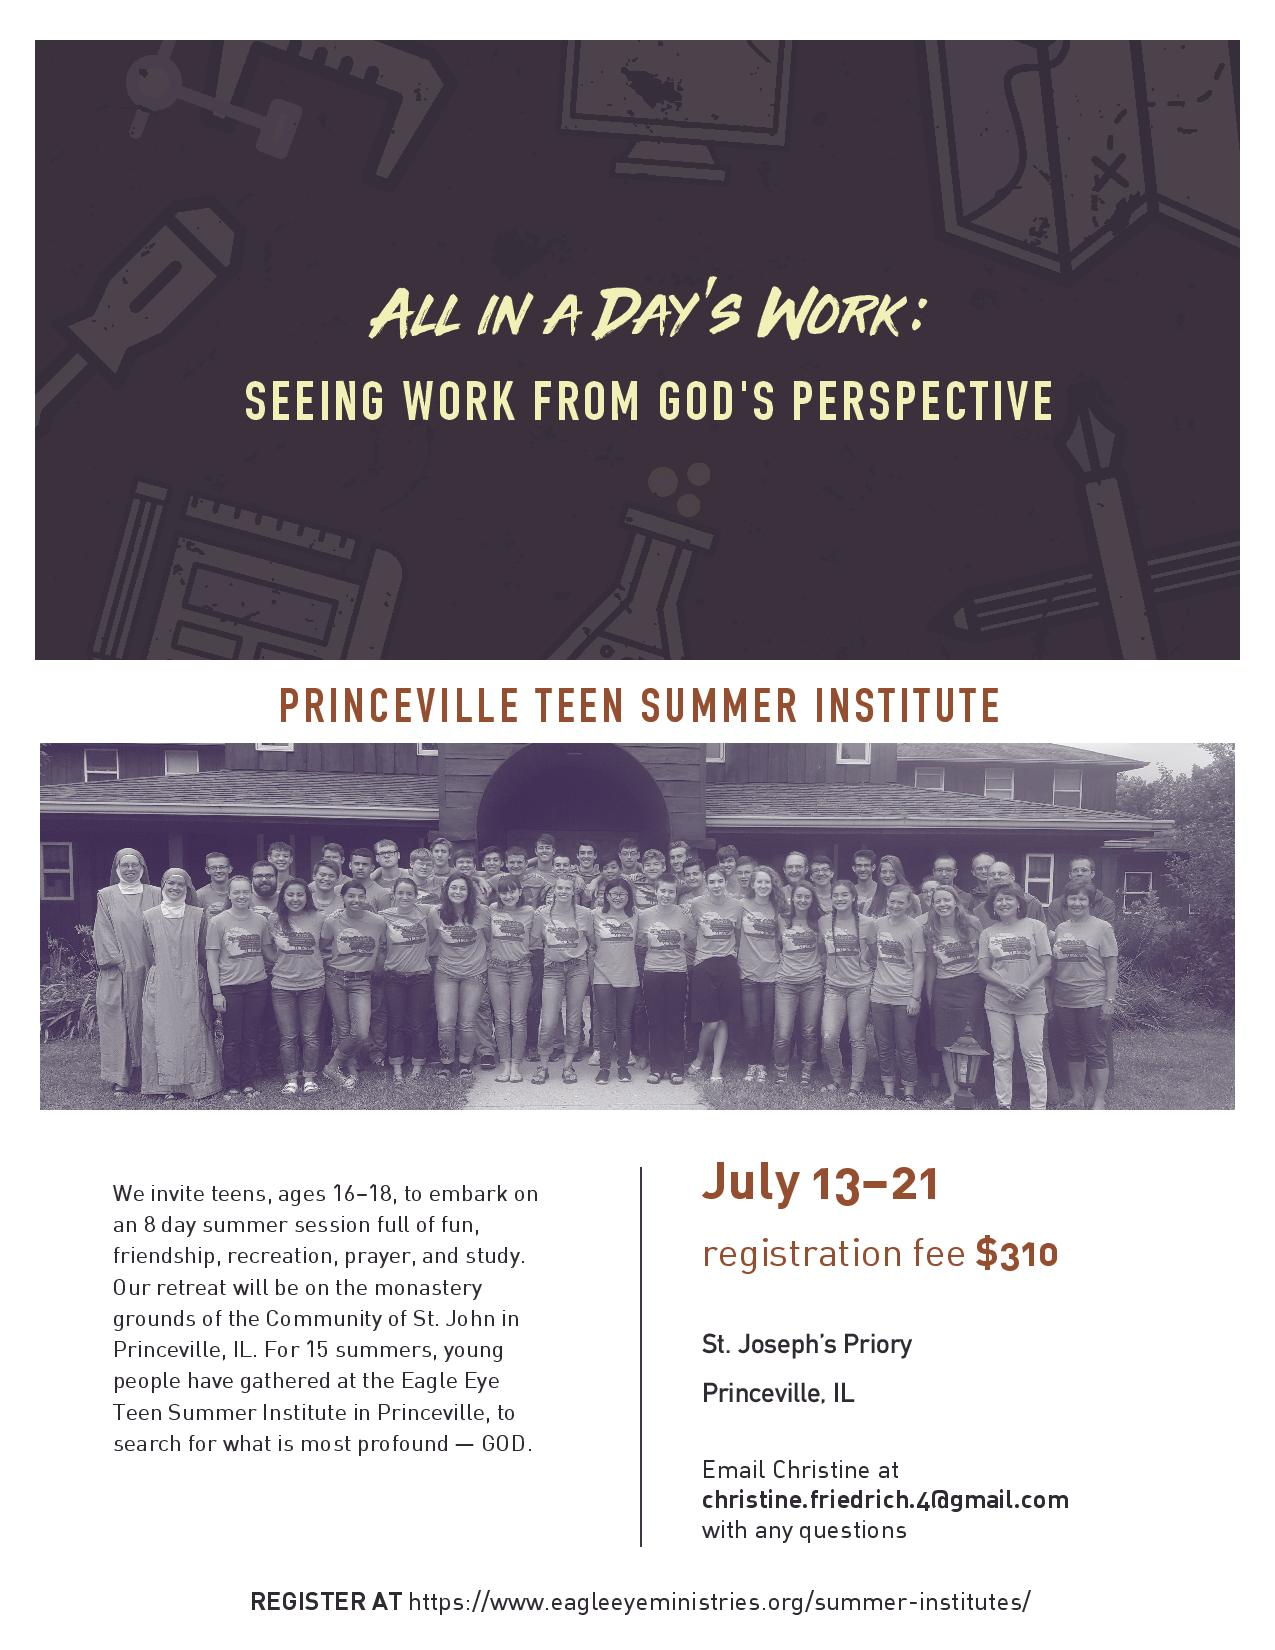 Princeville Eagle Eye, Catholic Summer camp for Teens